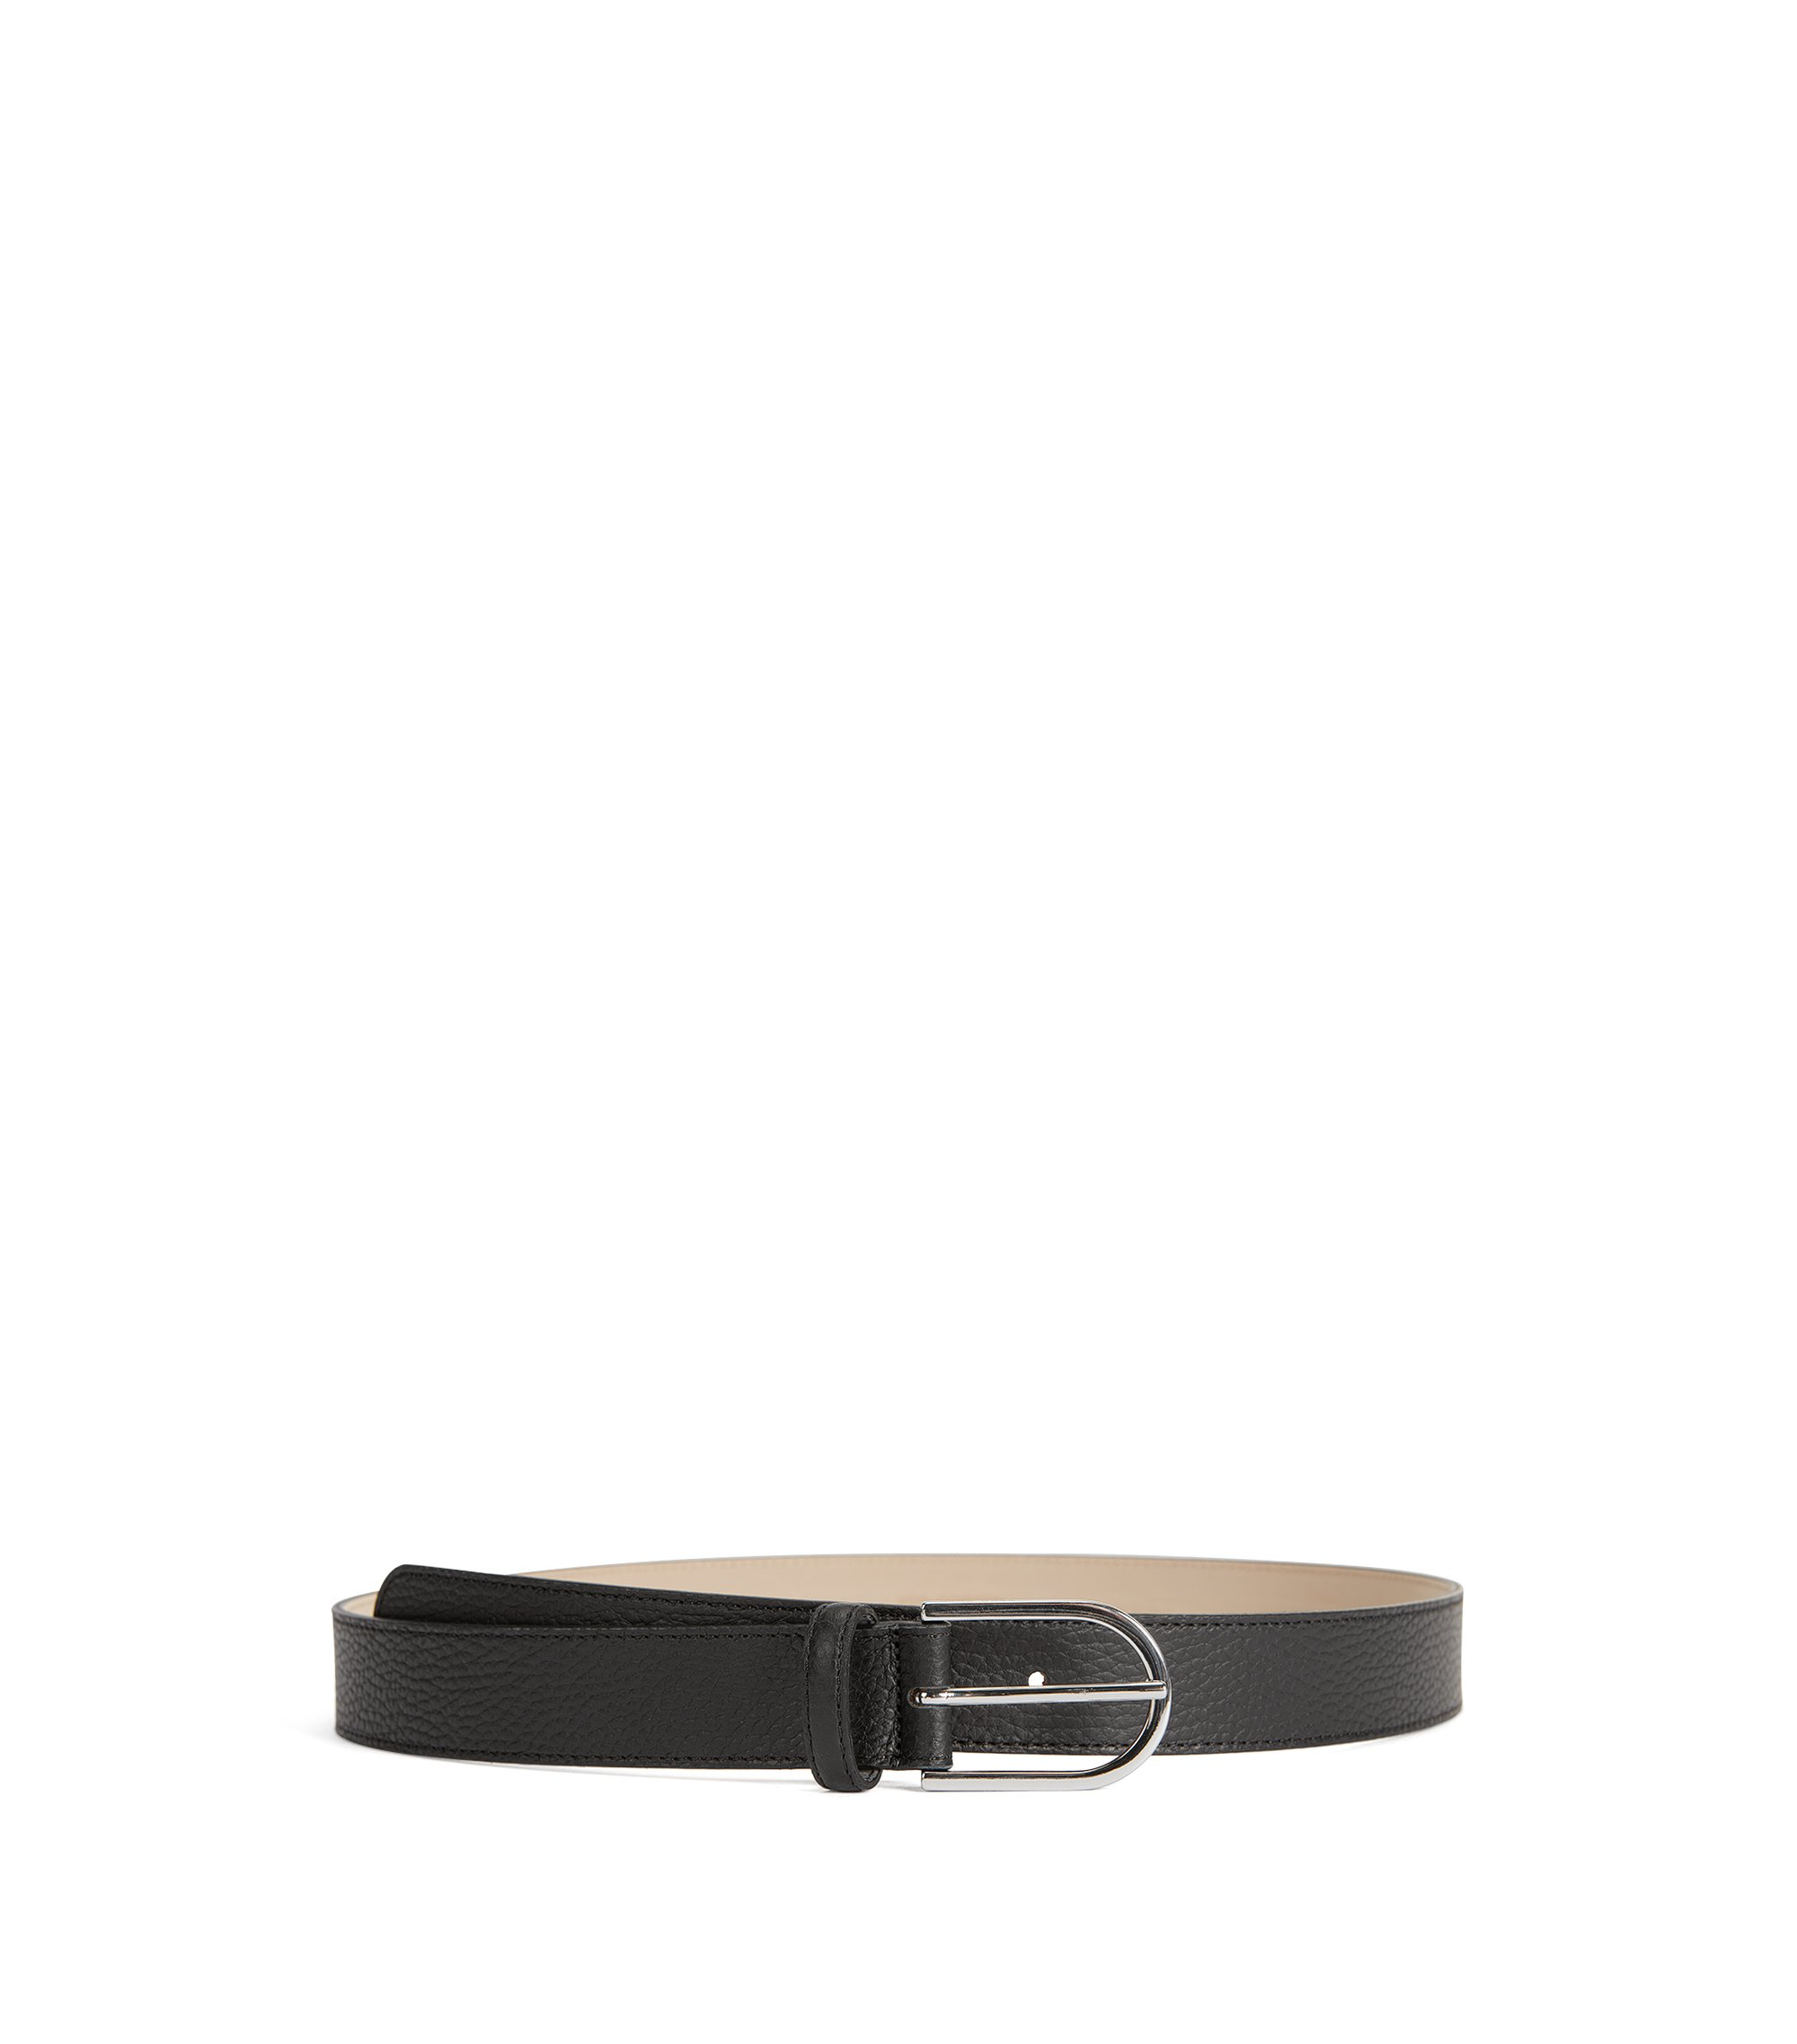 Grained-leather belt with a rounded buckle, Black